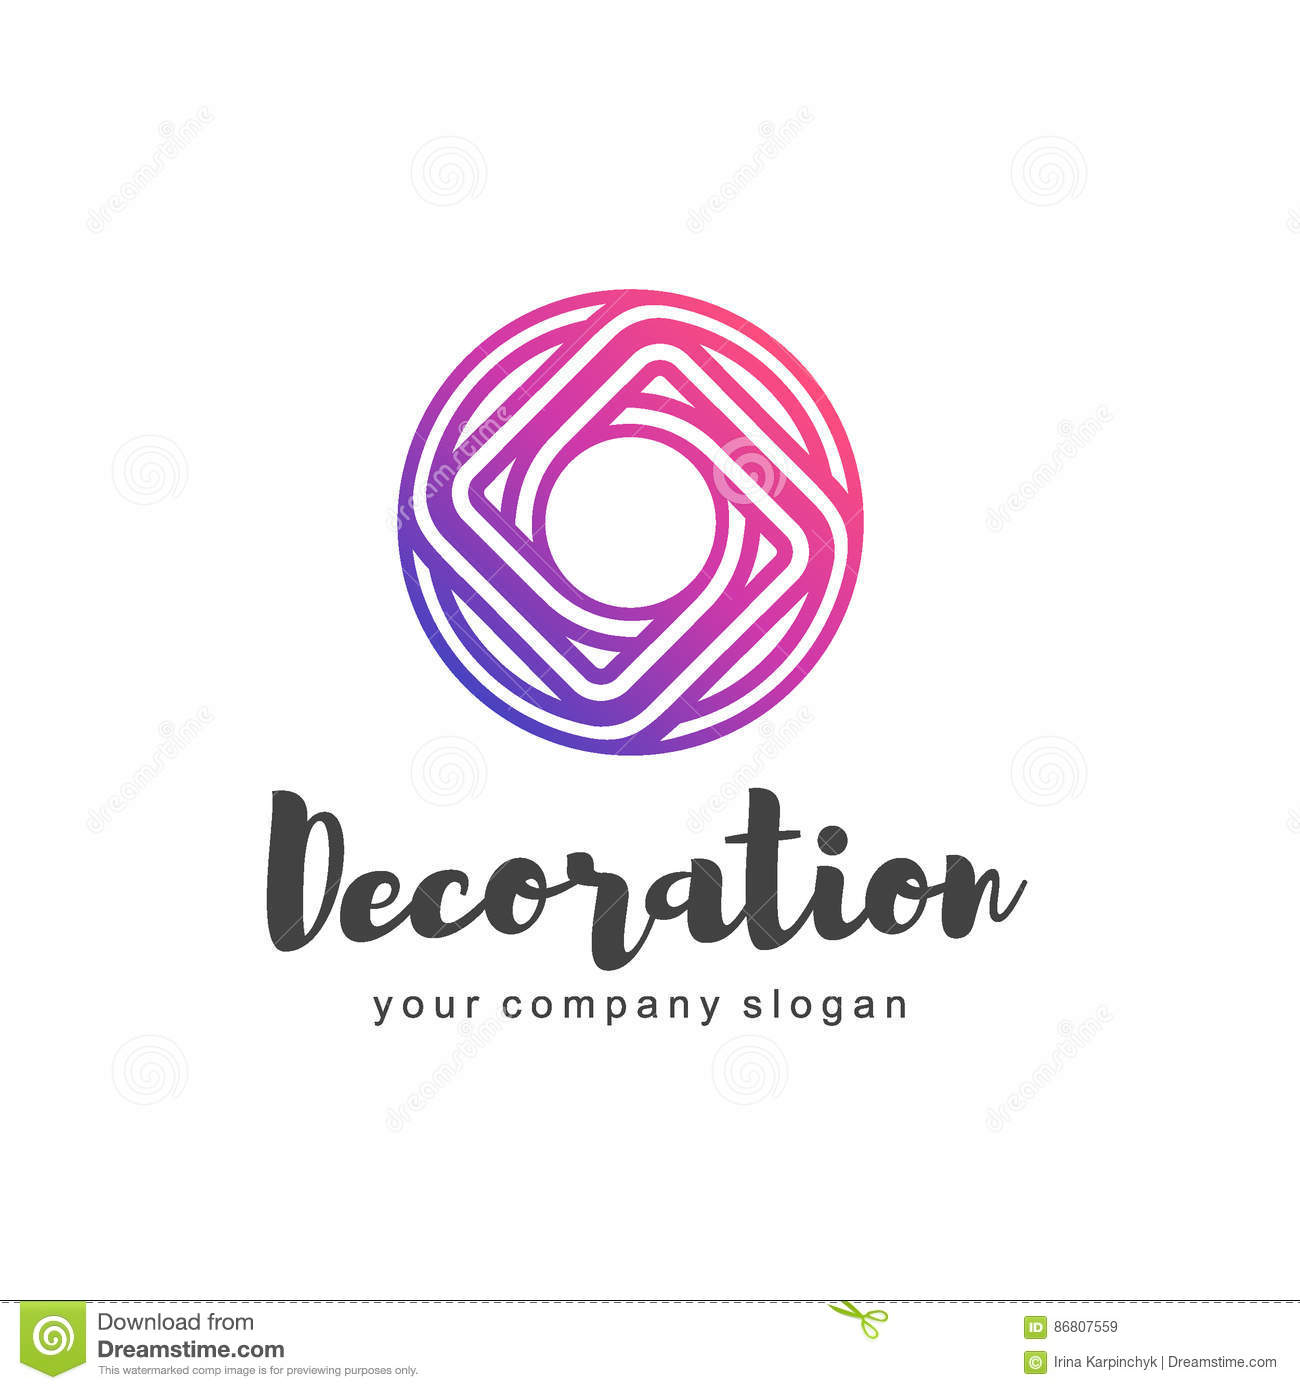 Decoration Logo Vector Logo For Interior Furniture Shops Decor Items And